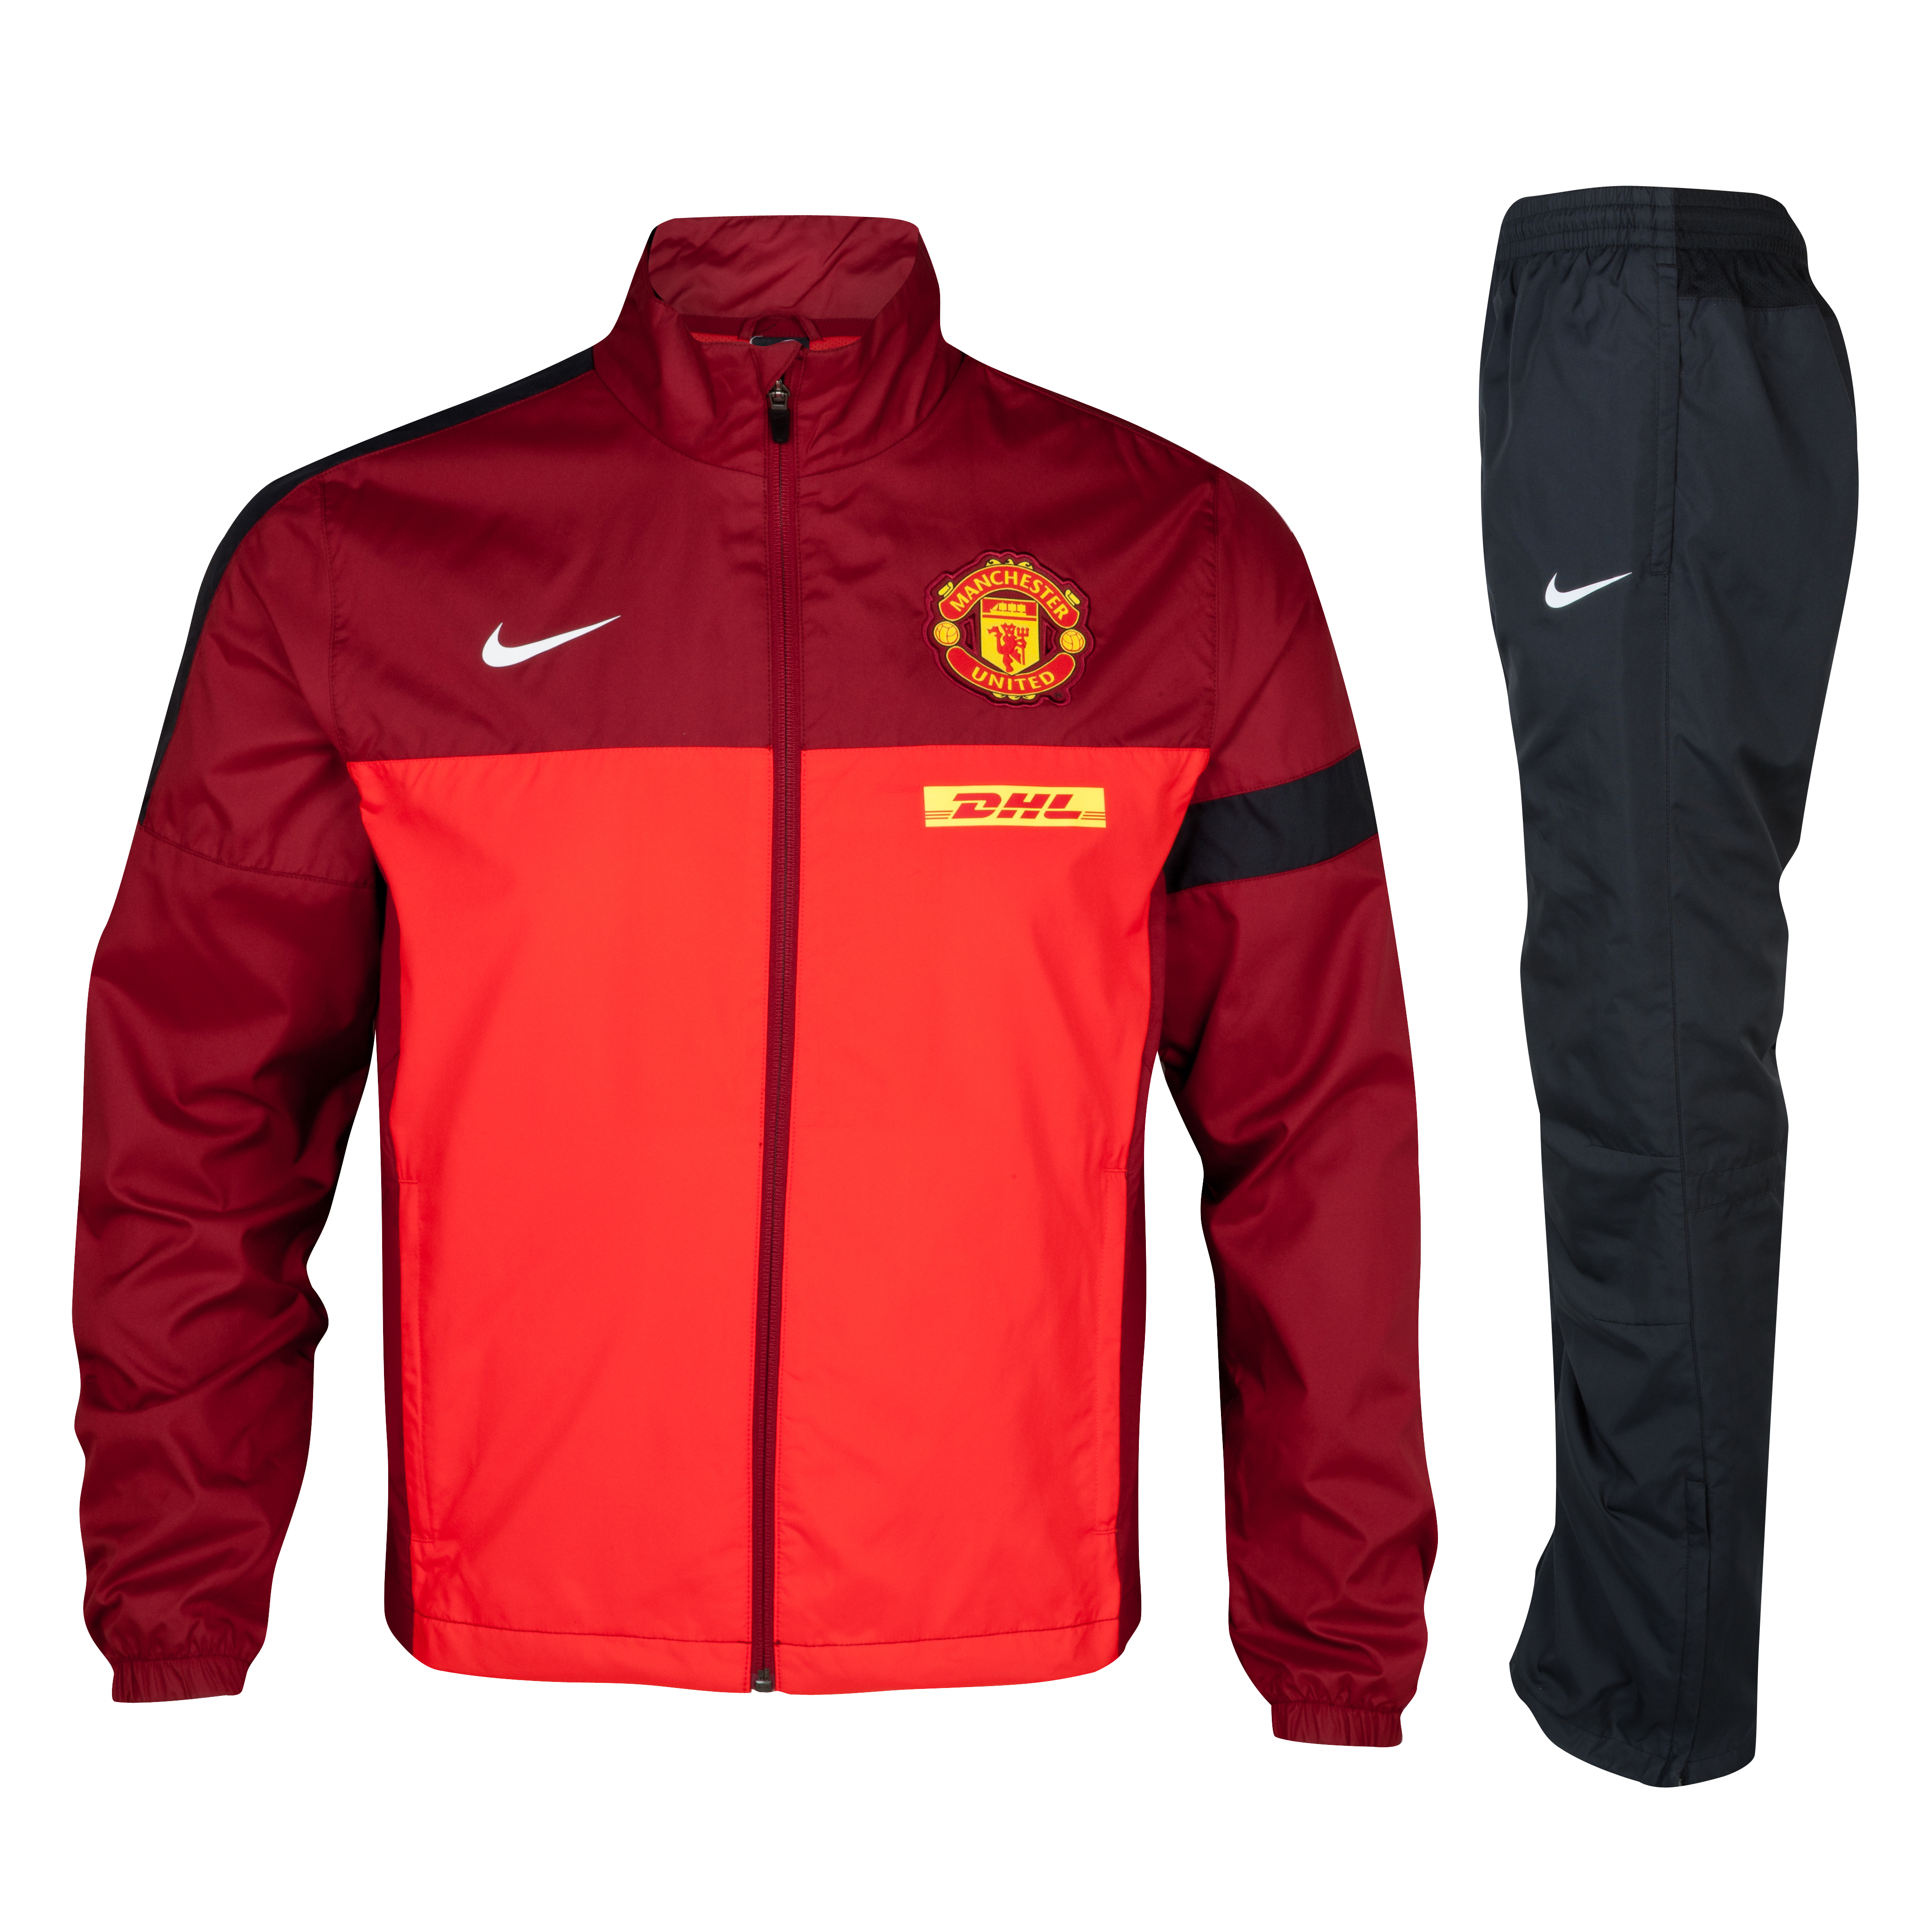 Manchester United Sideline Woven Warm Up Tracksuit - Challenge Red/Team Red/Black/White- Kids